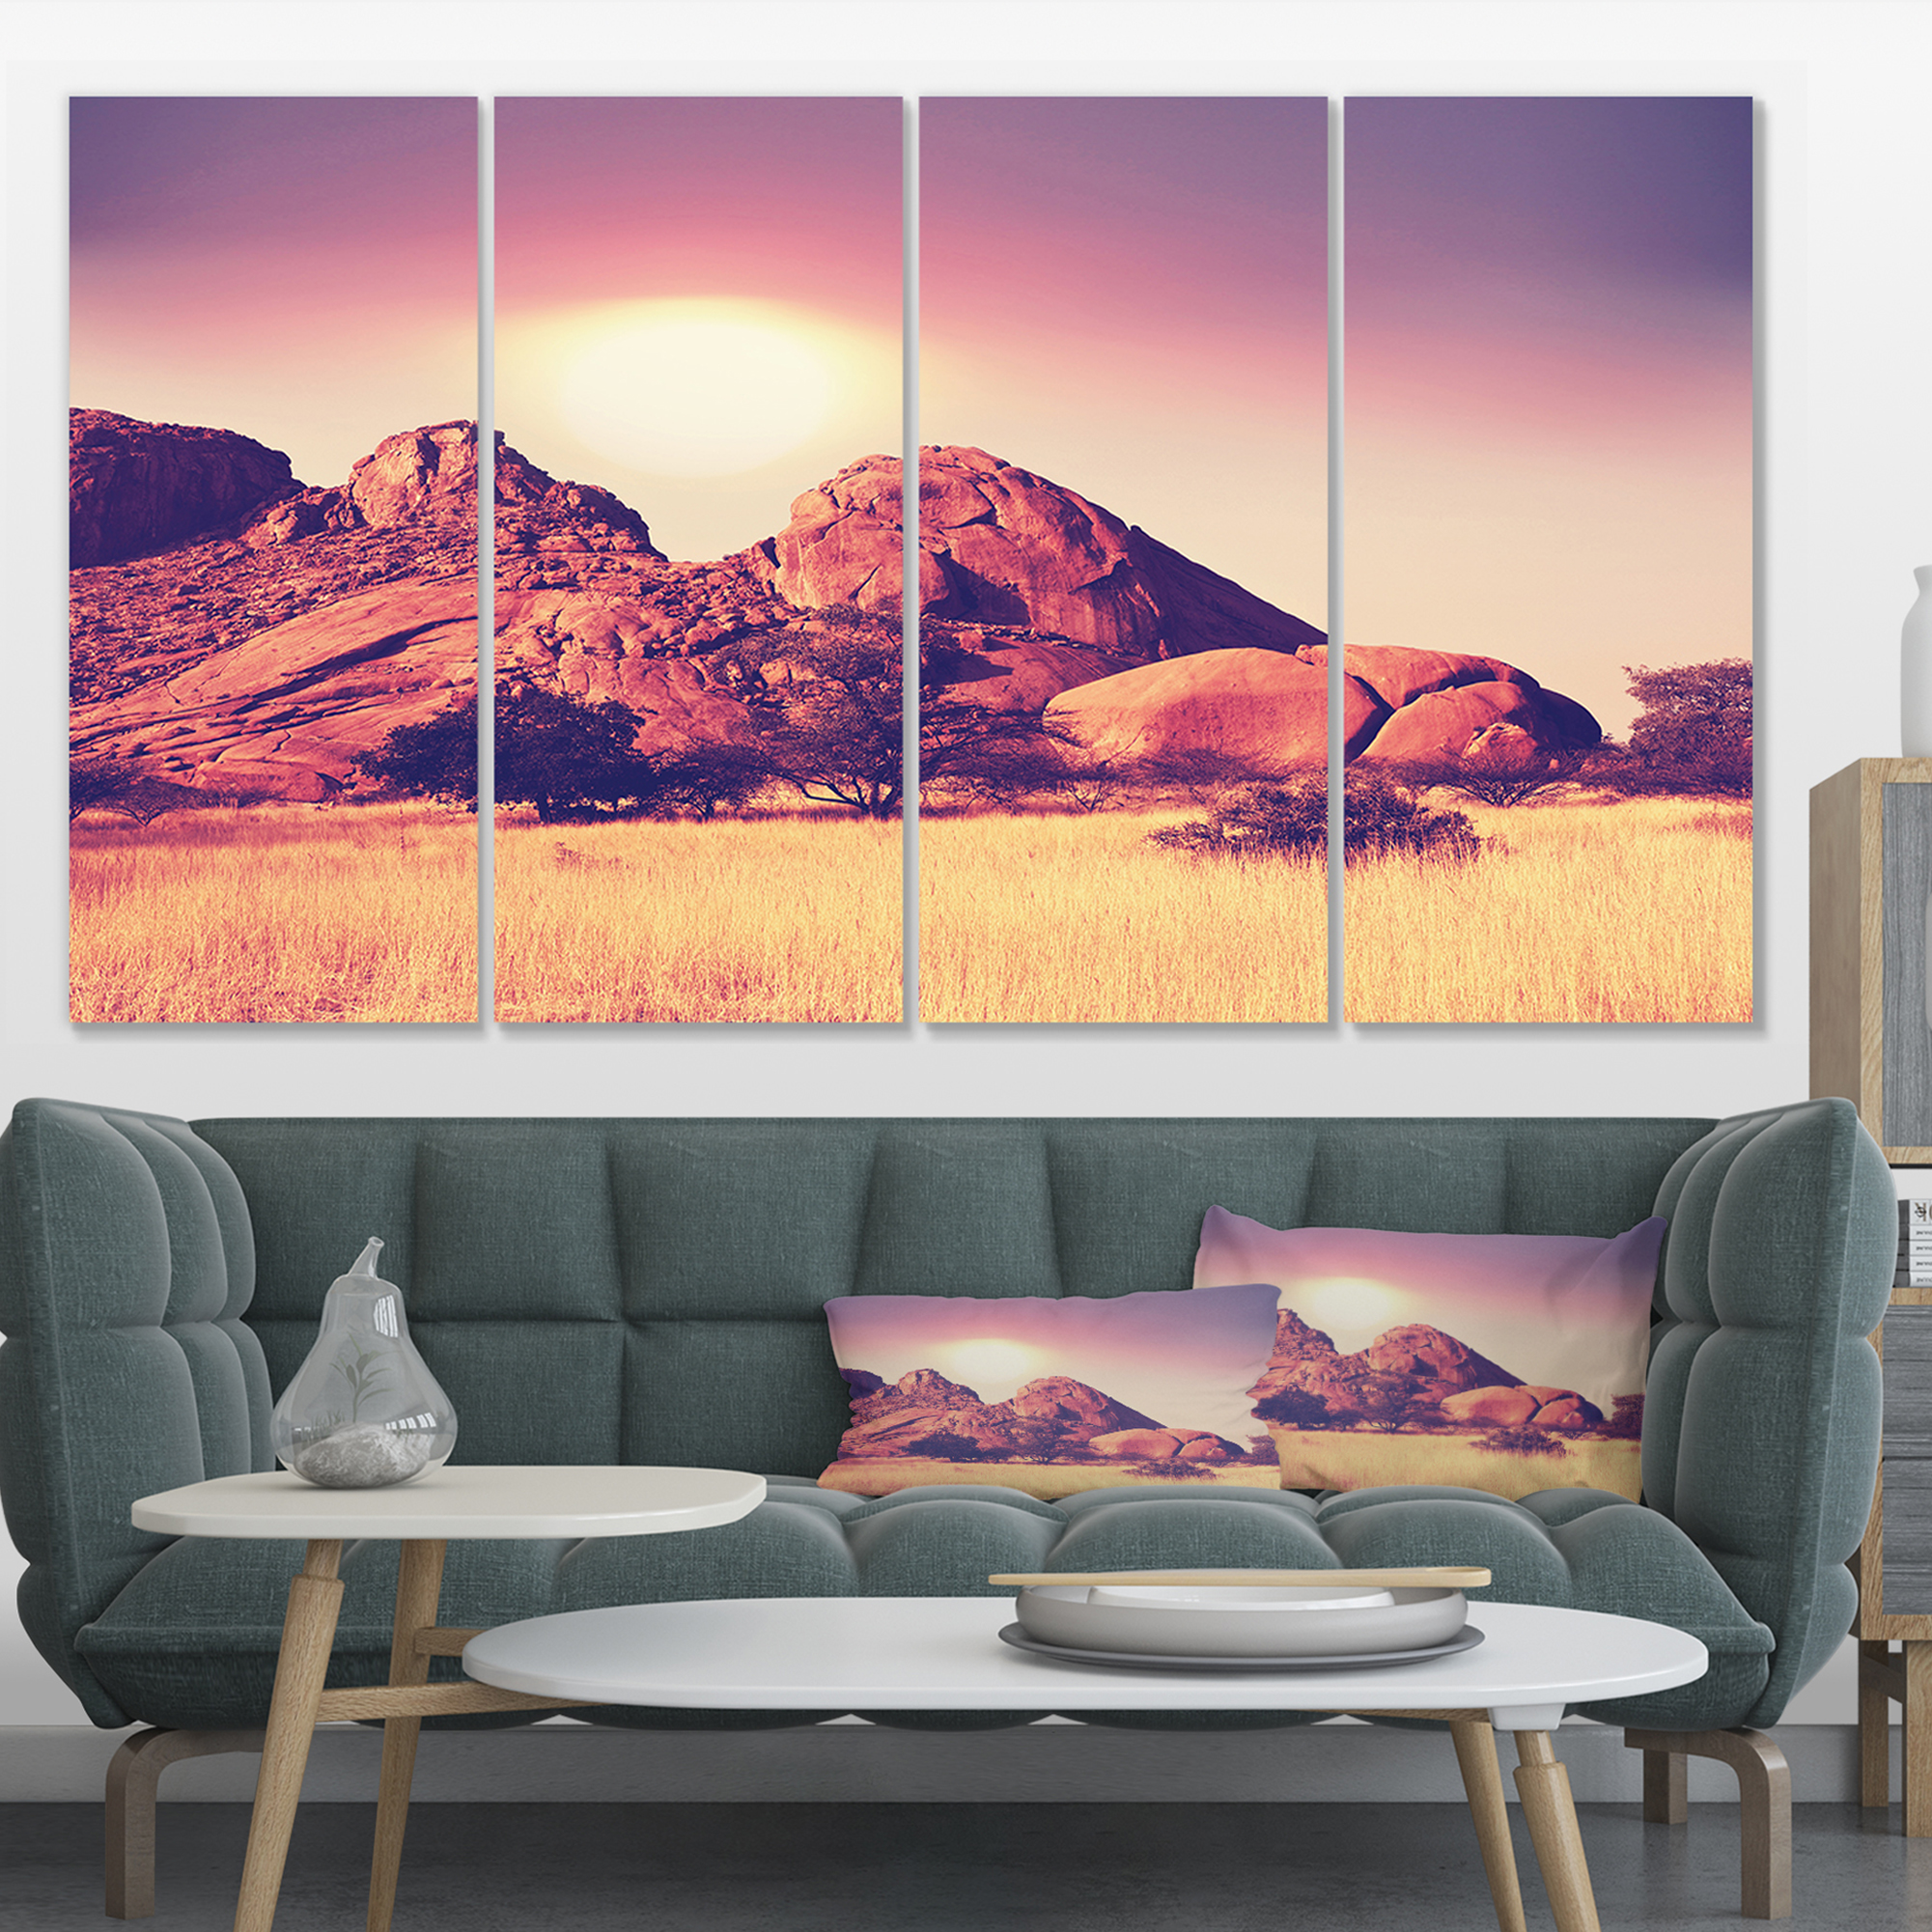 Rocky Hills and Grassland in Africa - Oversized Landscape Canvas Art - image 3 of 3